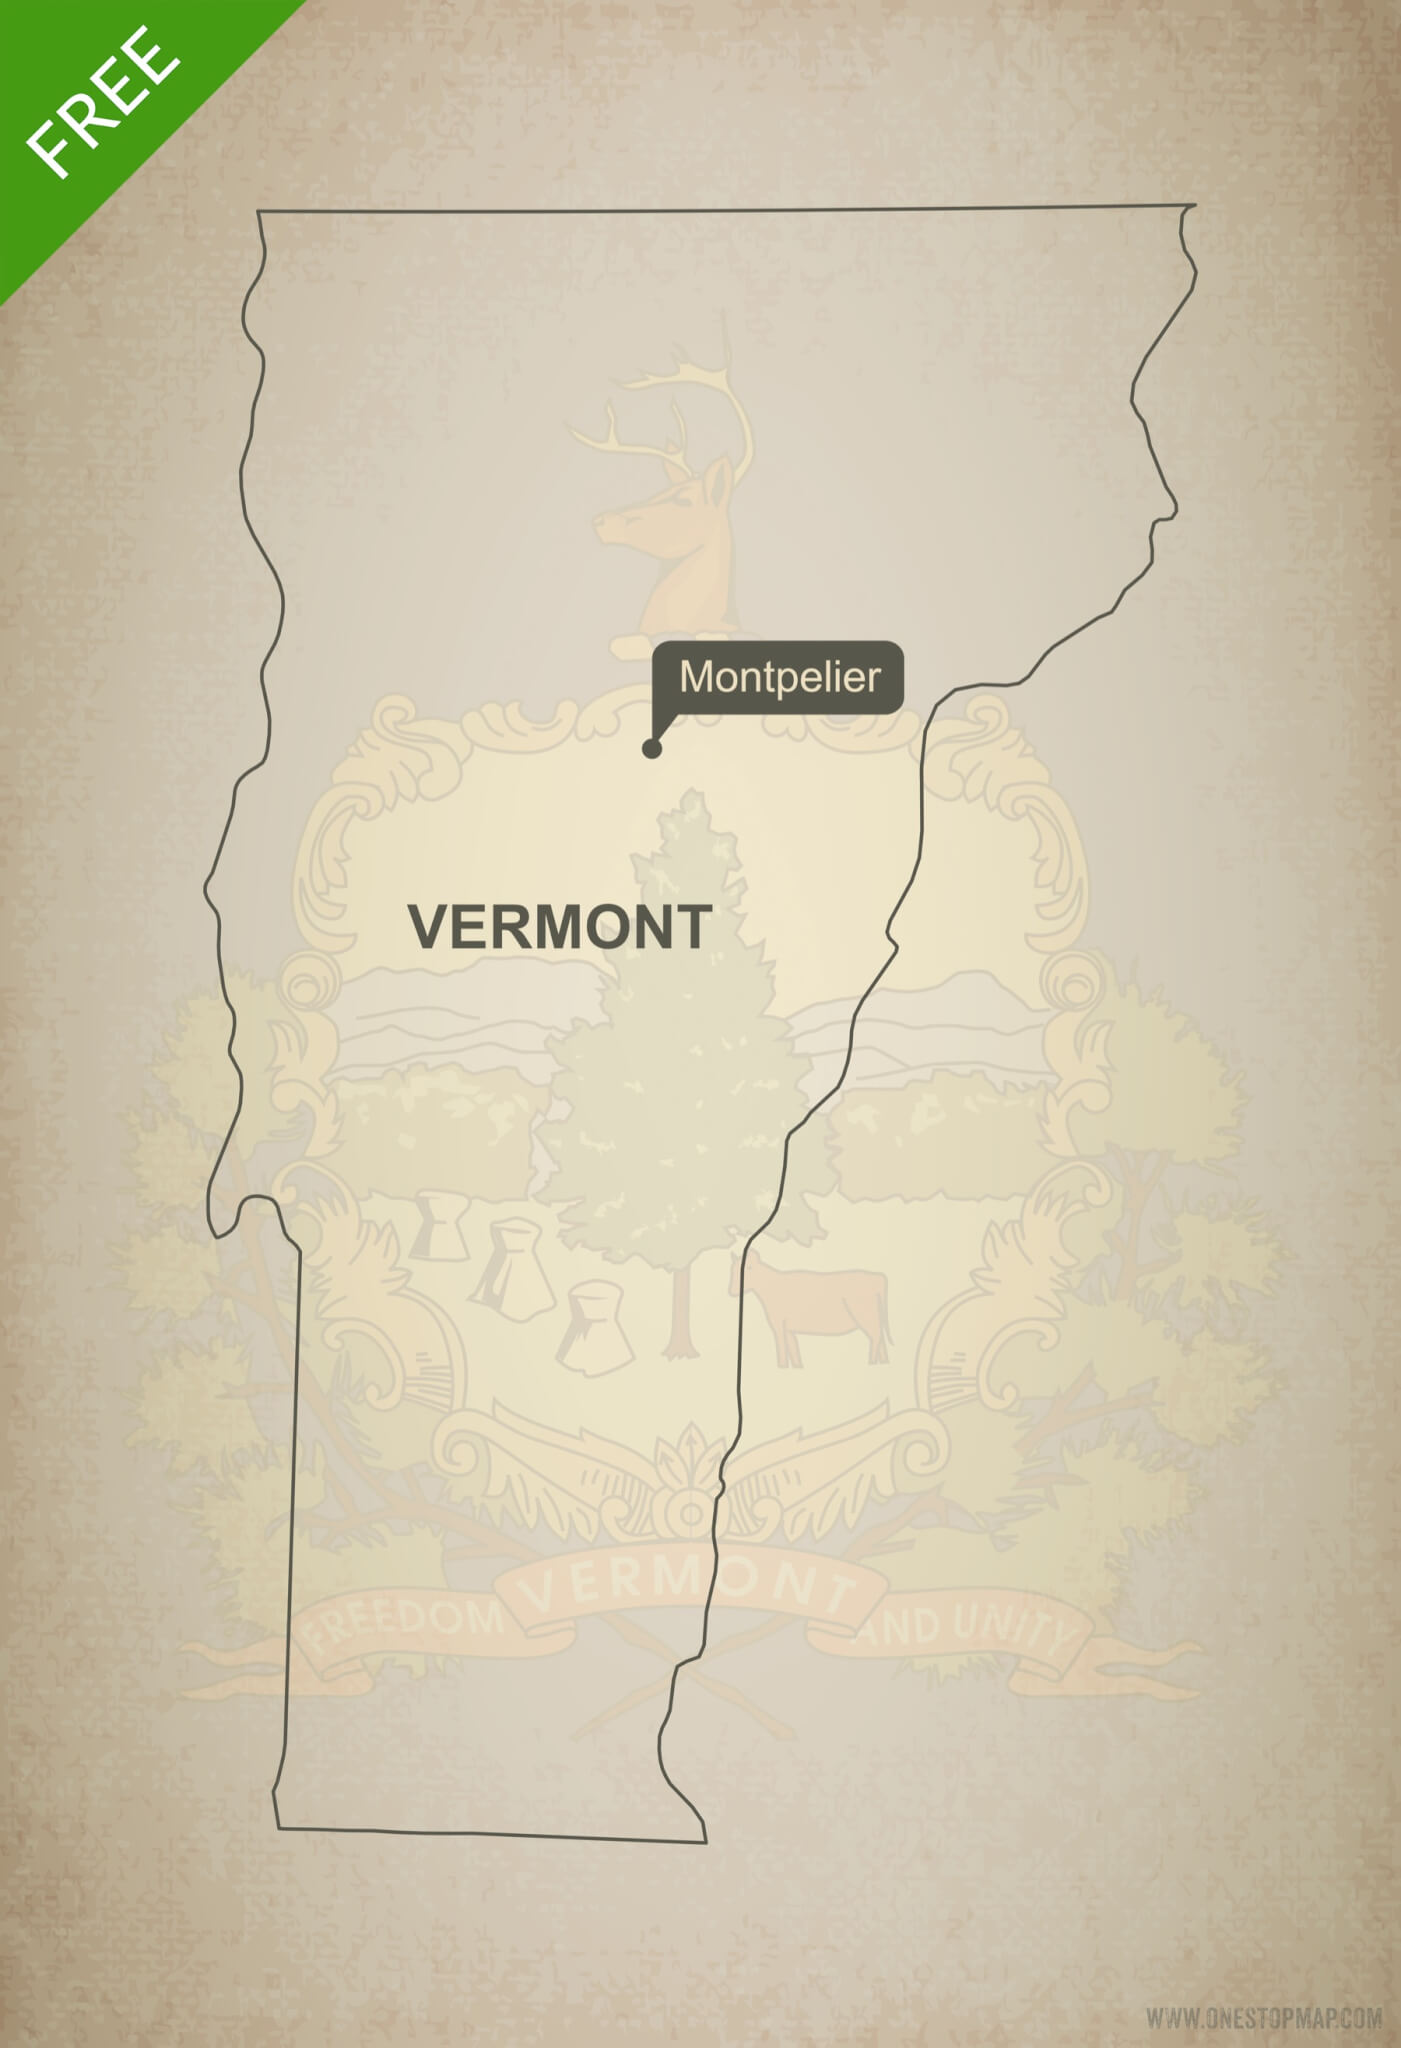 Free blank outline map of the U.S. state of Vermont